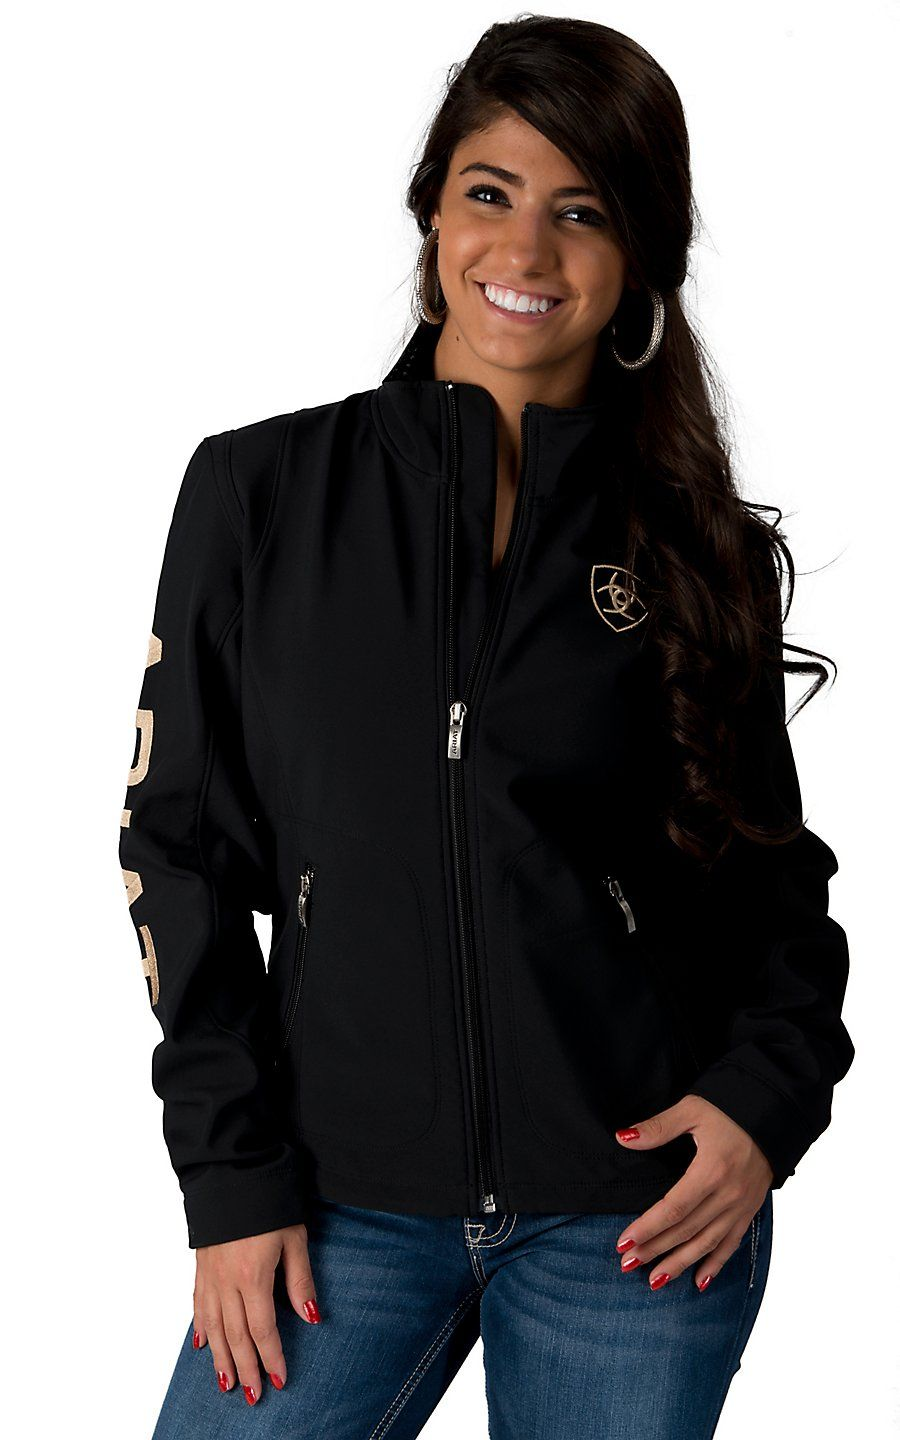 036e44f2a90 Ariat Women s Black Team Softshell Jacket from Cavender s ...